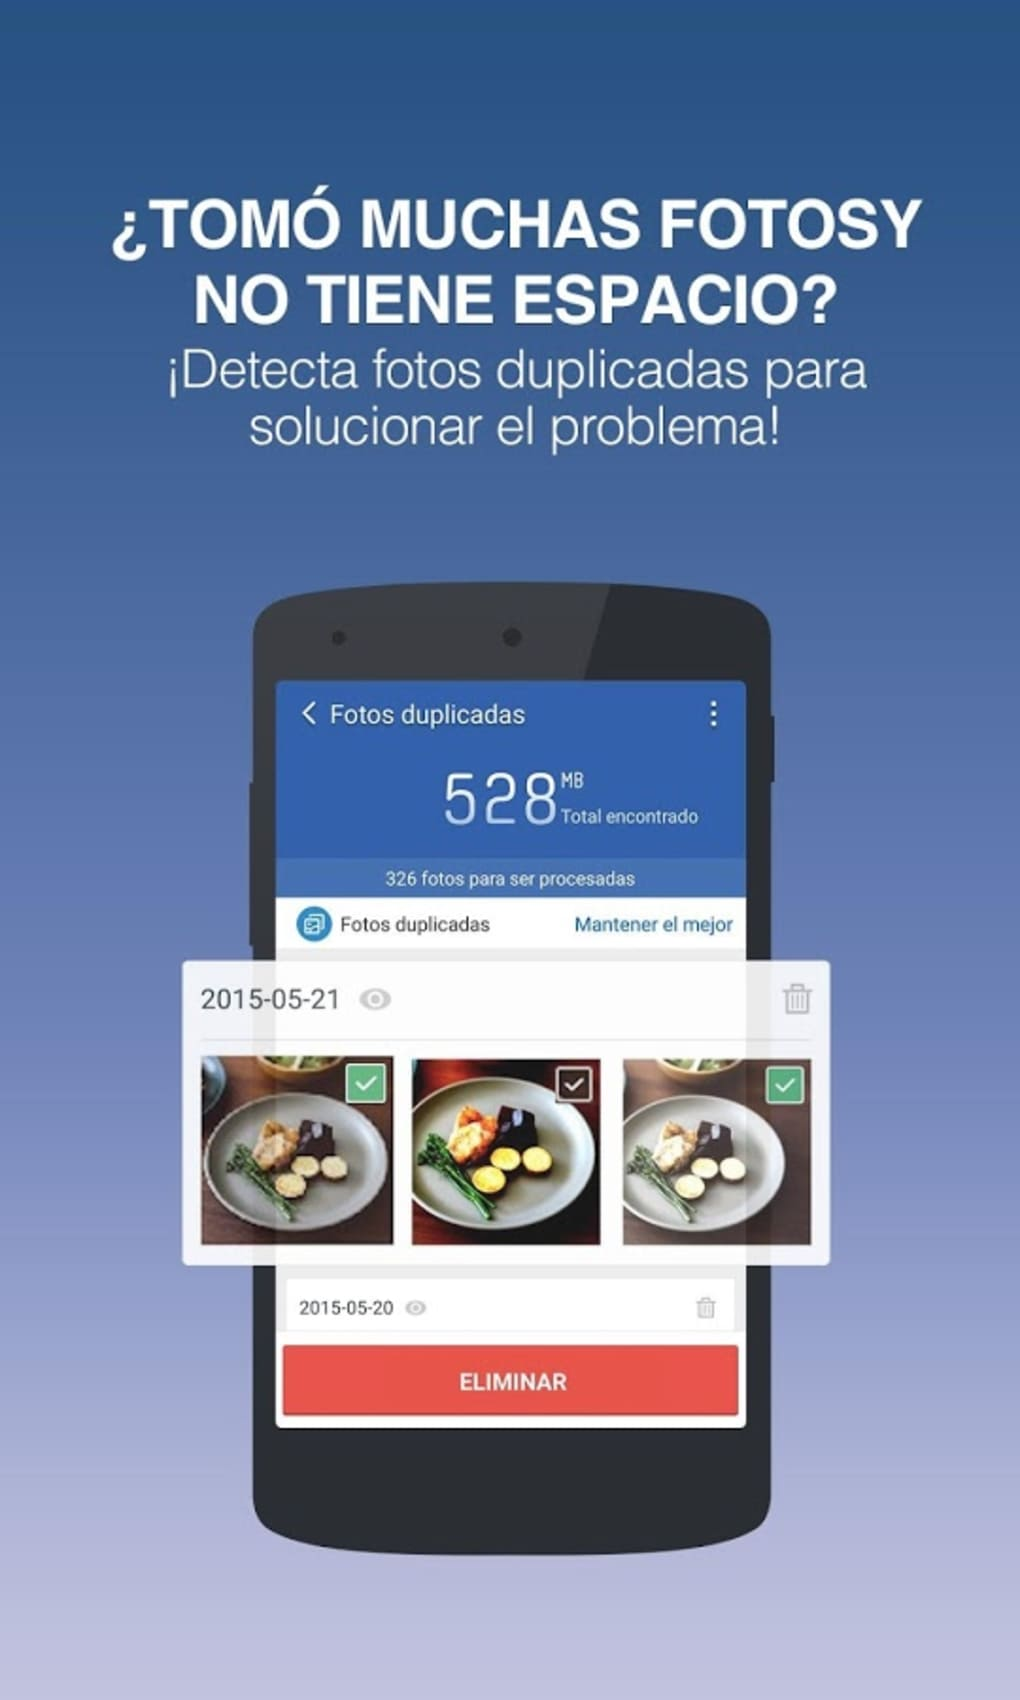 Clean Master (Cleaner) 7.2.7 para Android - Descargar